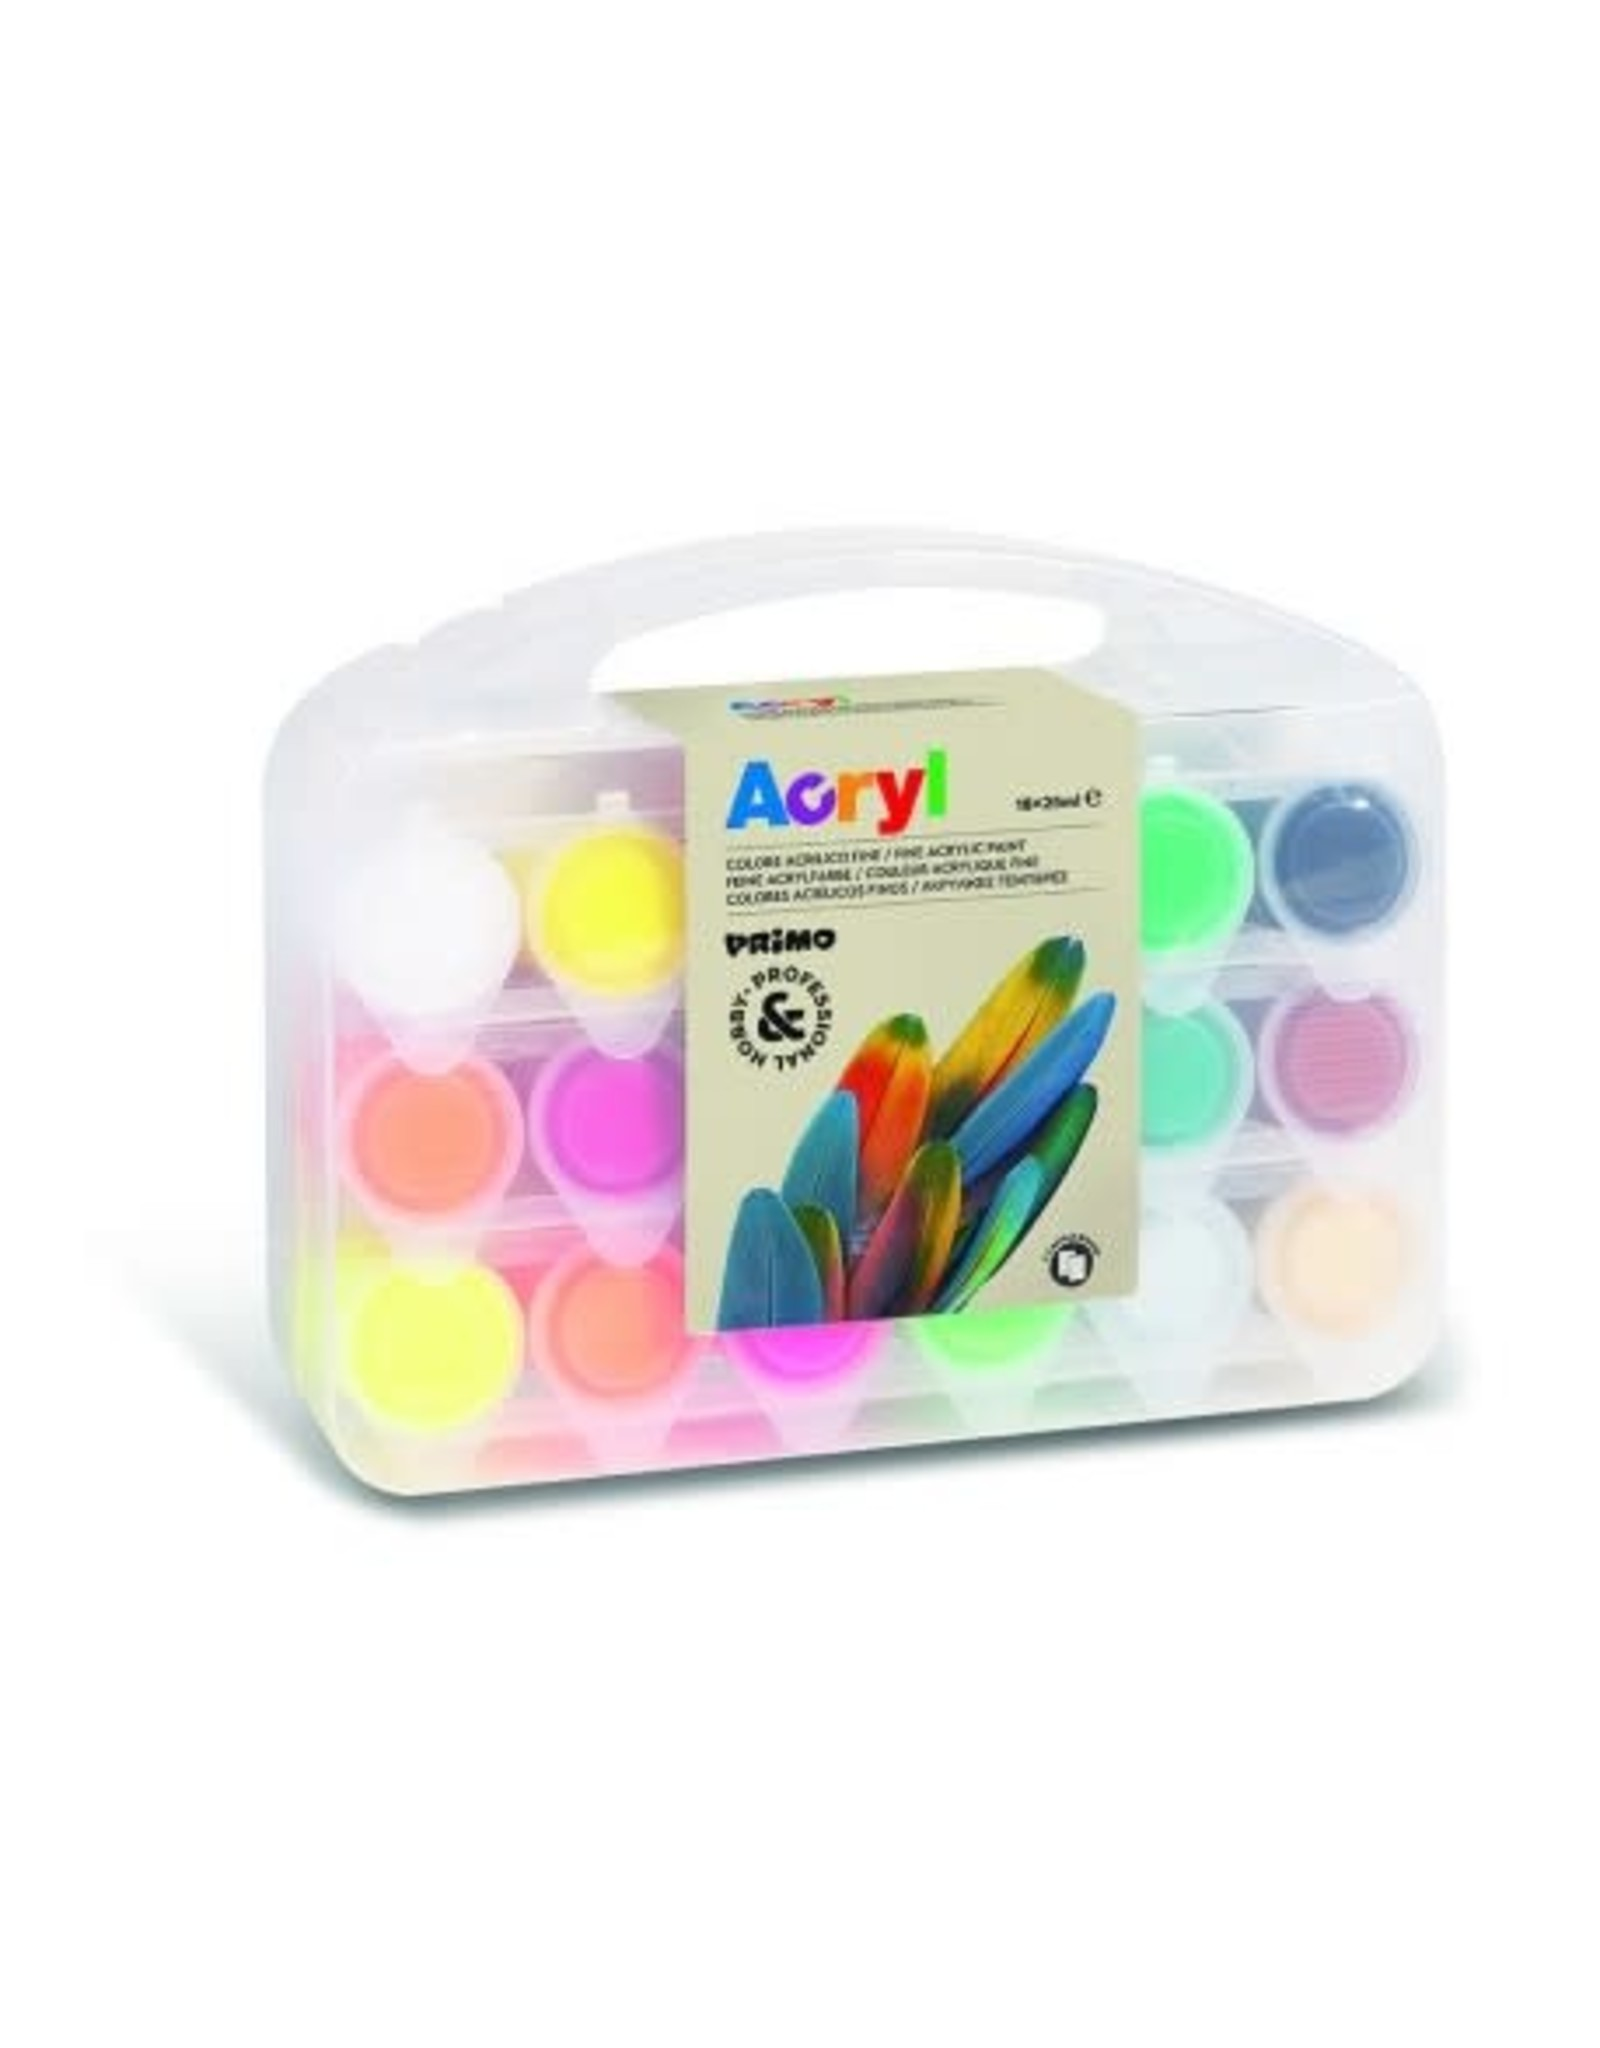 Primo Acrylverf in Koffer (18x25ml)